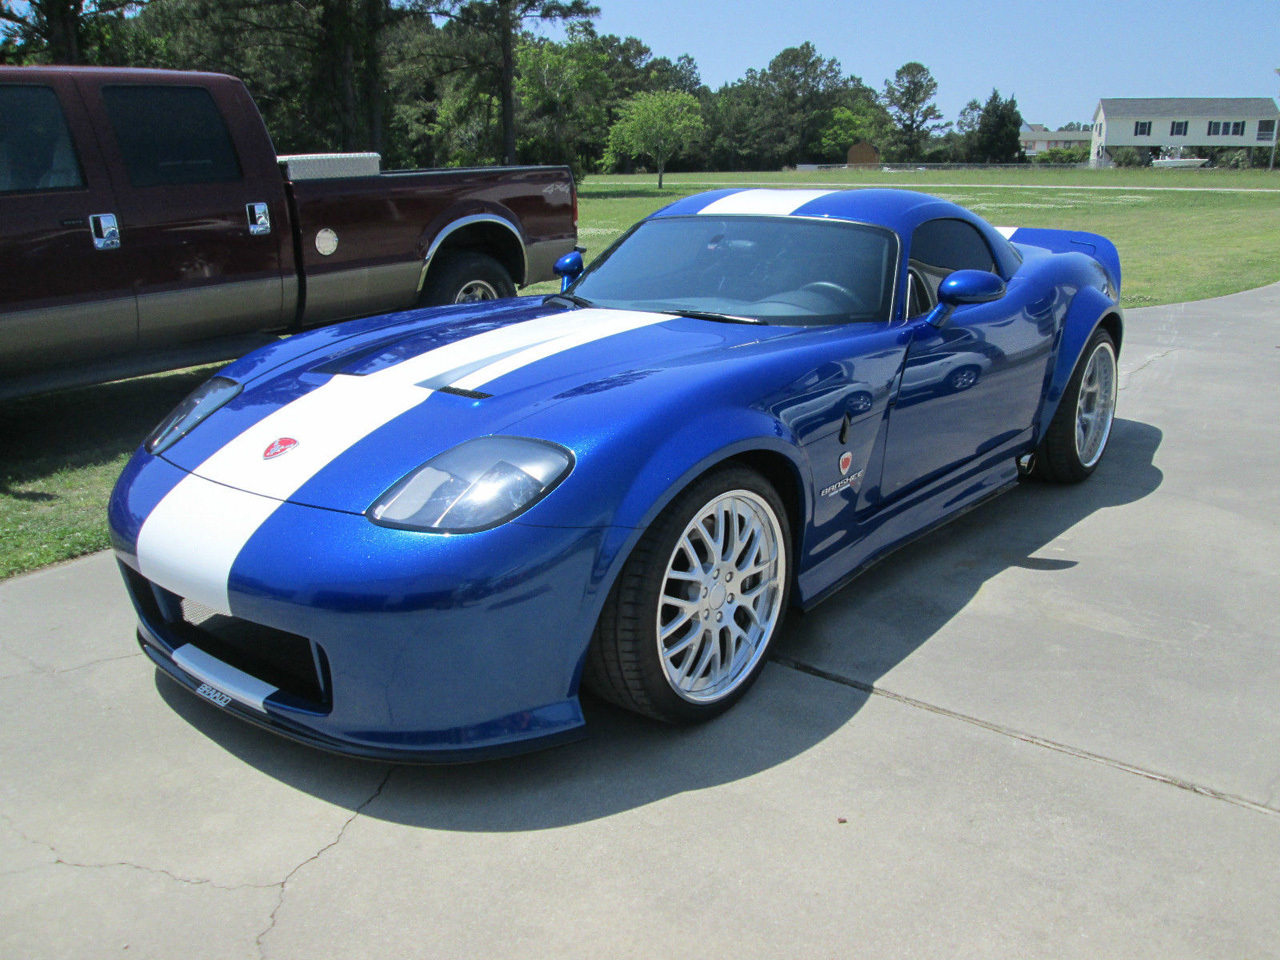 West Coast Customs Cars For Sale >> GTA Banshee on eBay Photo Gallery - Autoblog